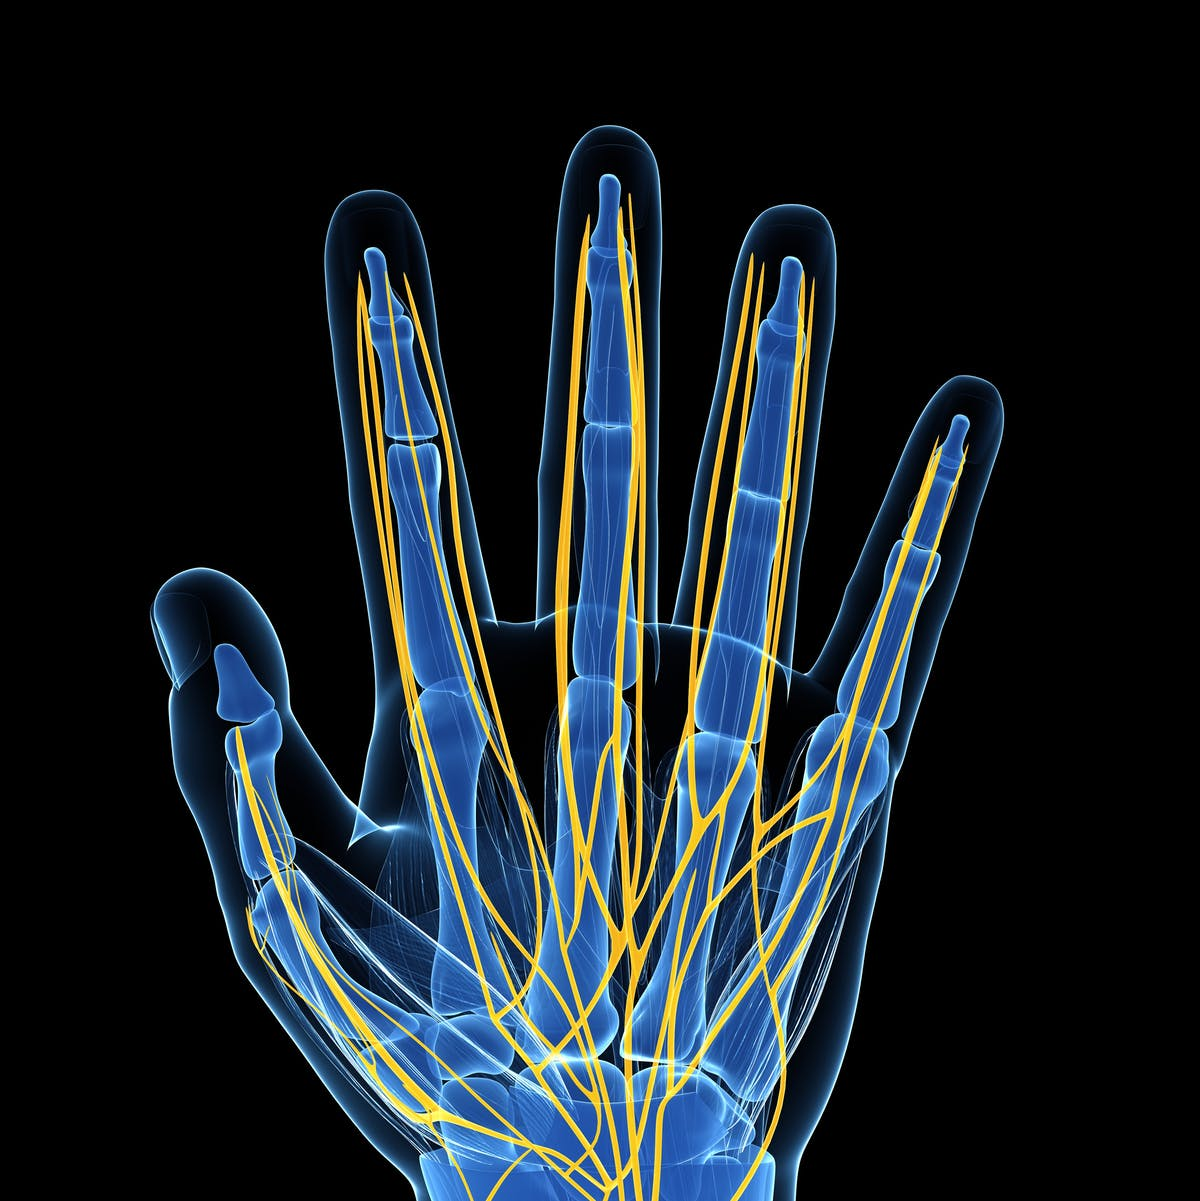 Arthritic pain is a nightmare. Body temperature could offer some clues.